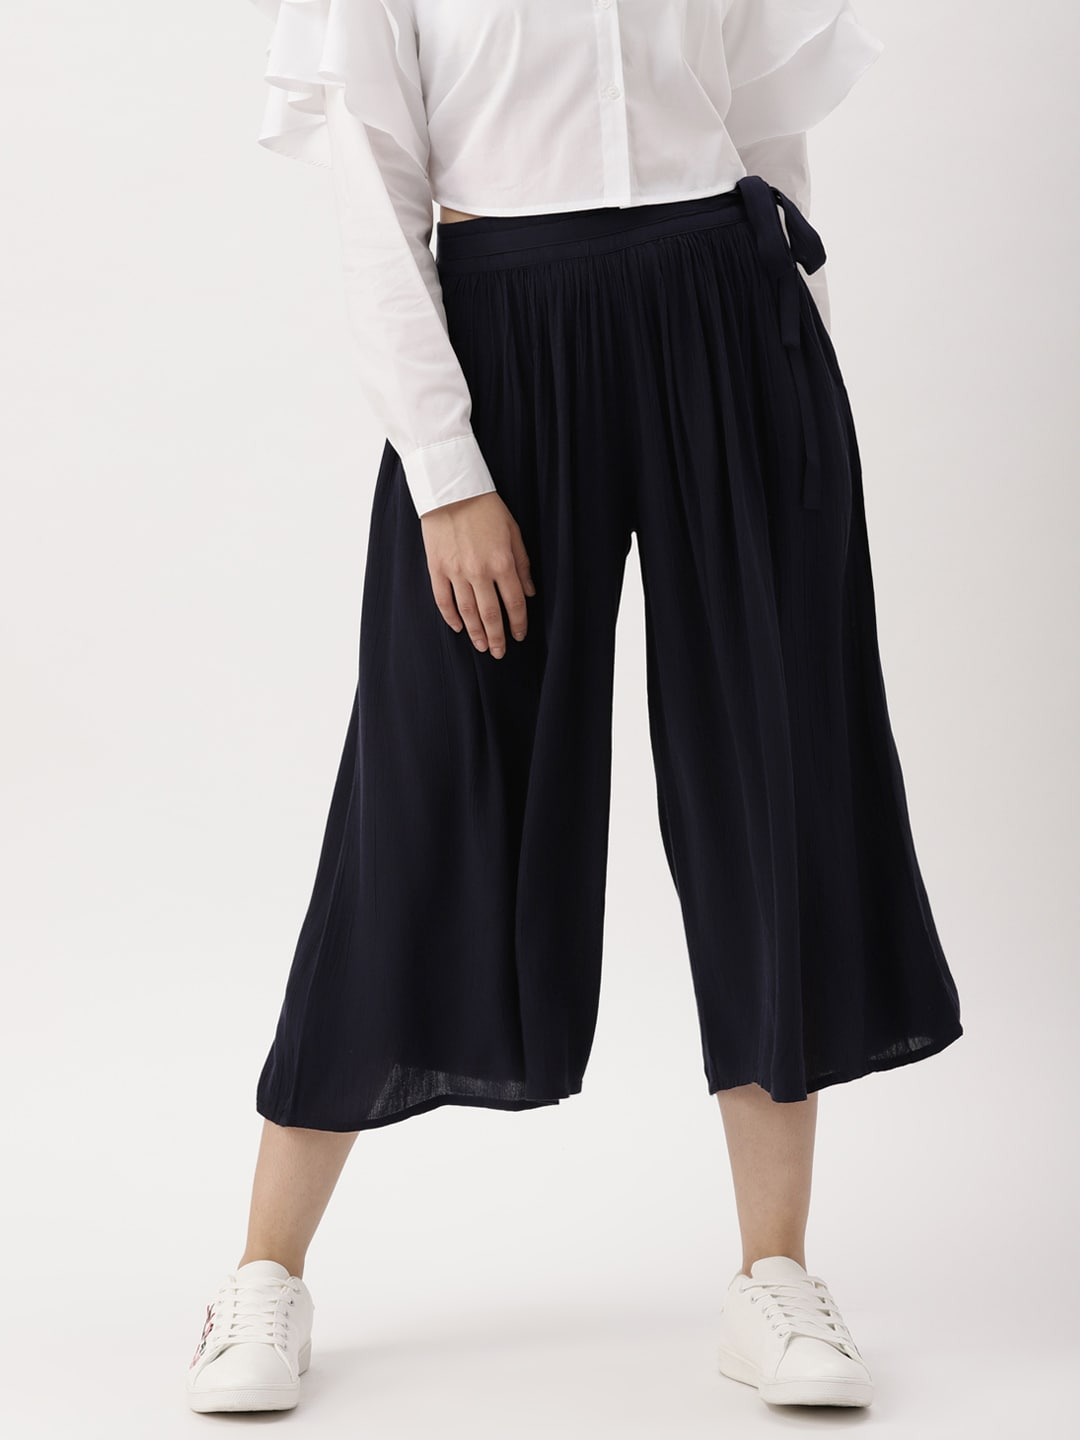 Viscose Trousers For Women - Buy Viscose Trousers For Women online in India f87197c19